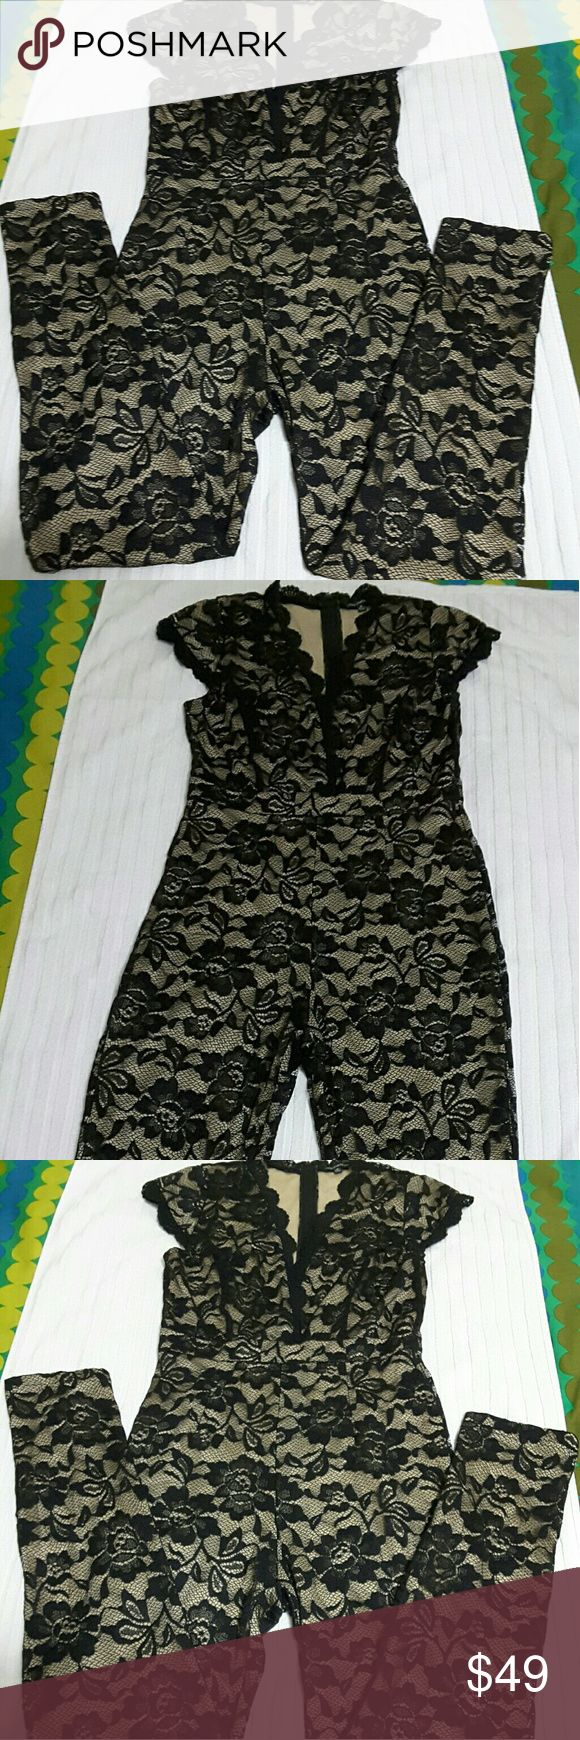 Shinesdar Lace Black & Nude Jumpsuits Medium Pre -owned Shinesdar Black & Nude Jumpsuits Medium Featured Beck zipper 21 inches drop Length Shoulder down 55 in Waist 28 in Fits with little stretch Open v neck lace front Shinesdar Other